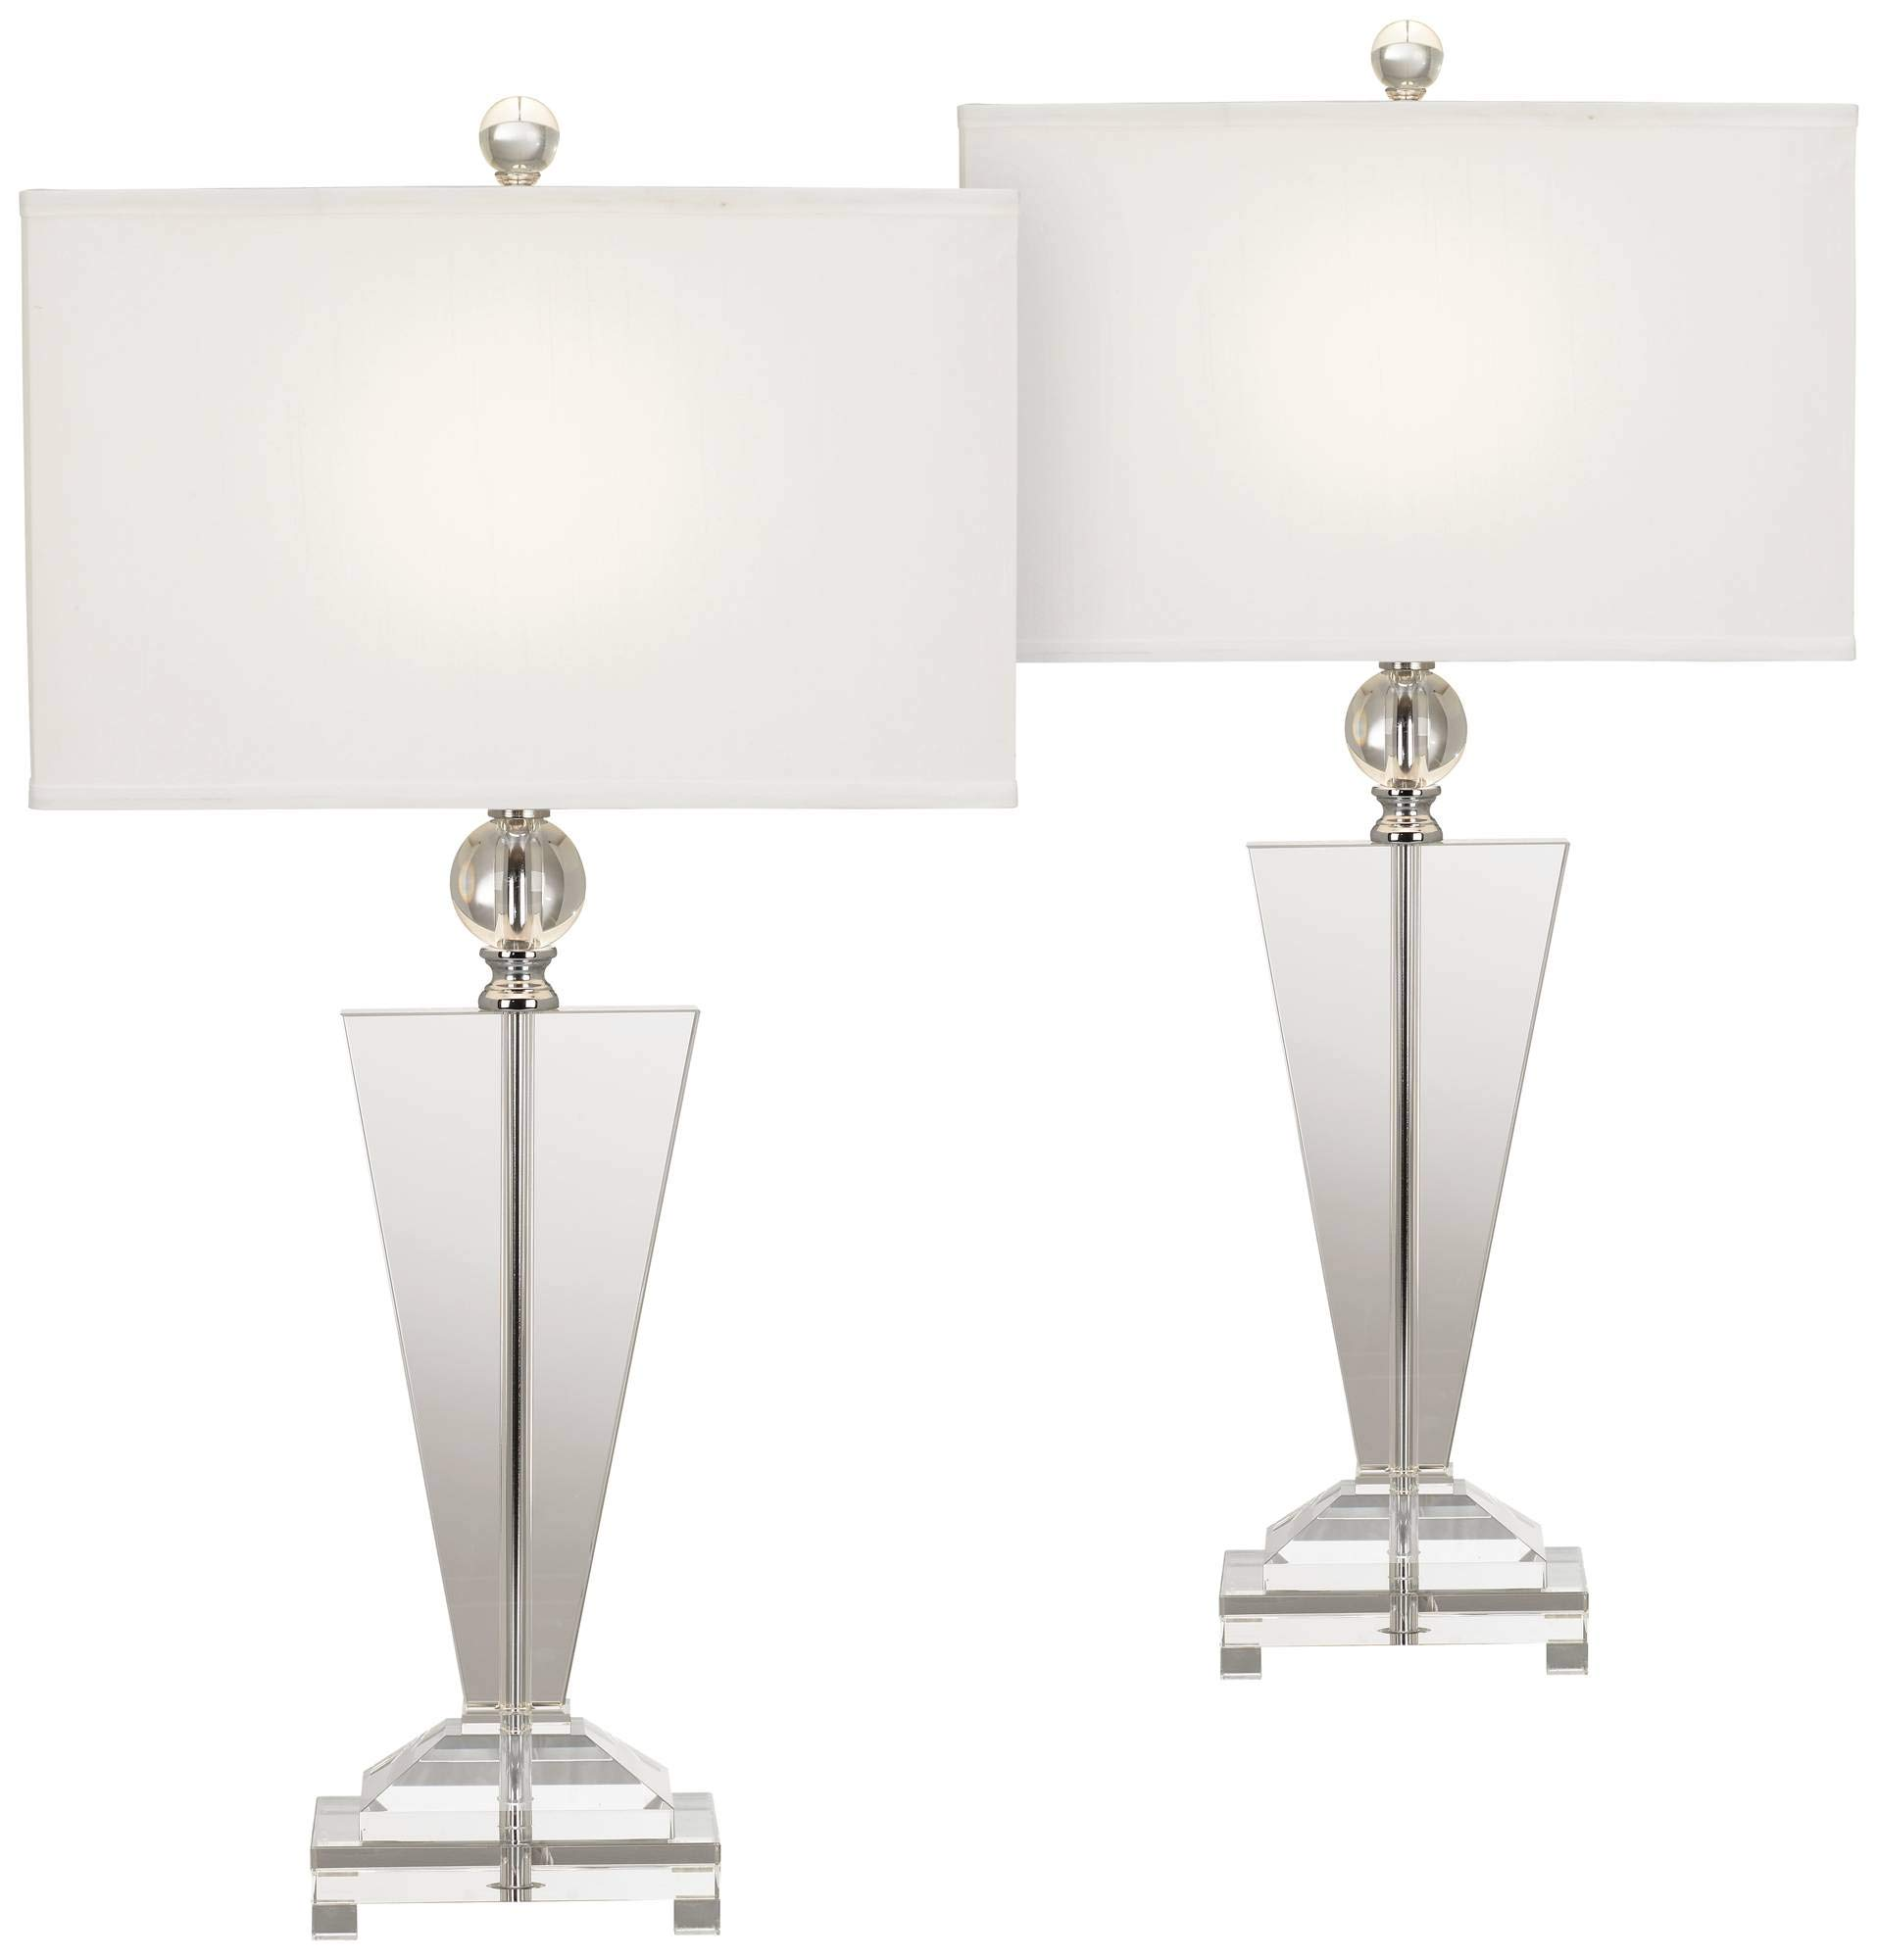 Modern Table Lamps Set of 2 Art Deco Crystal Trophy Off White Rectangular Shade for Living Room Bedroom - Vienna Full Spectrum